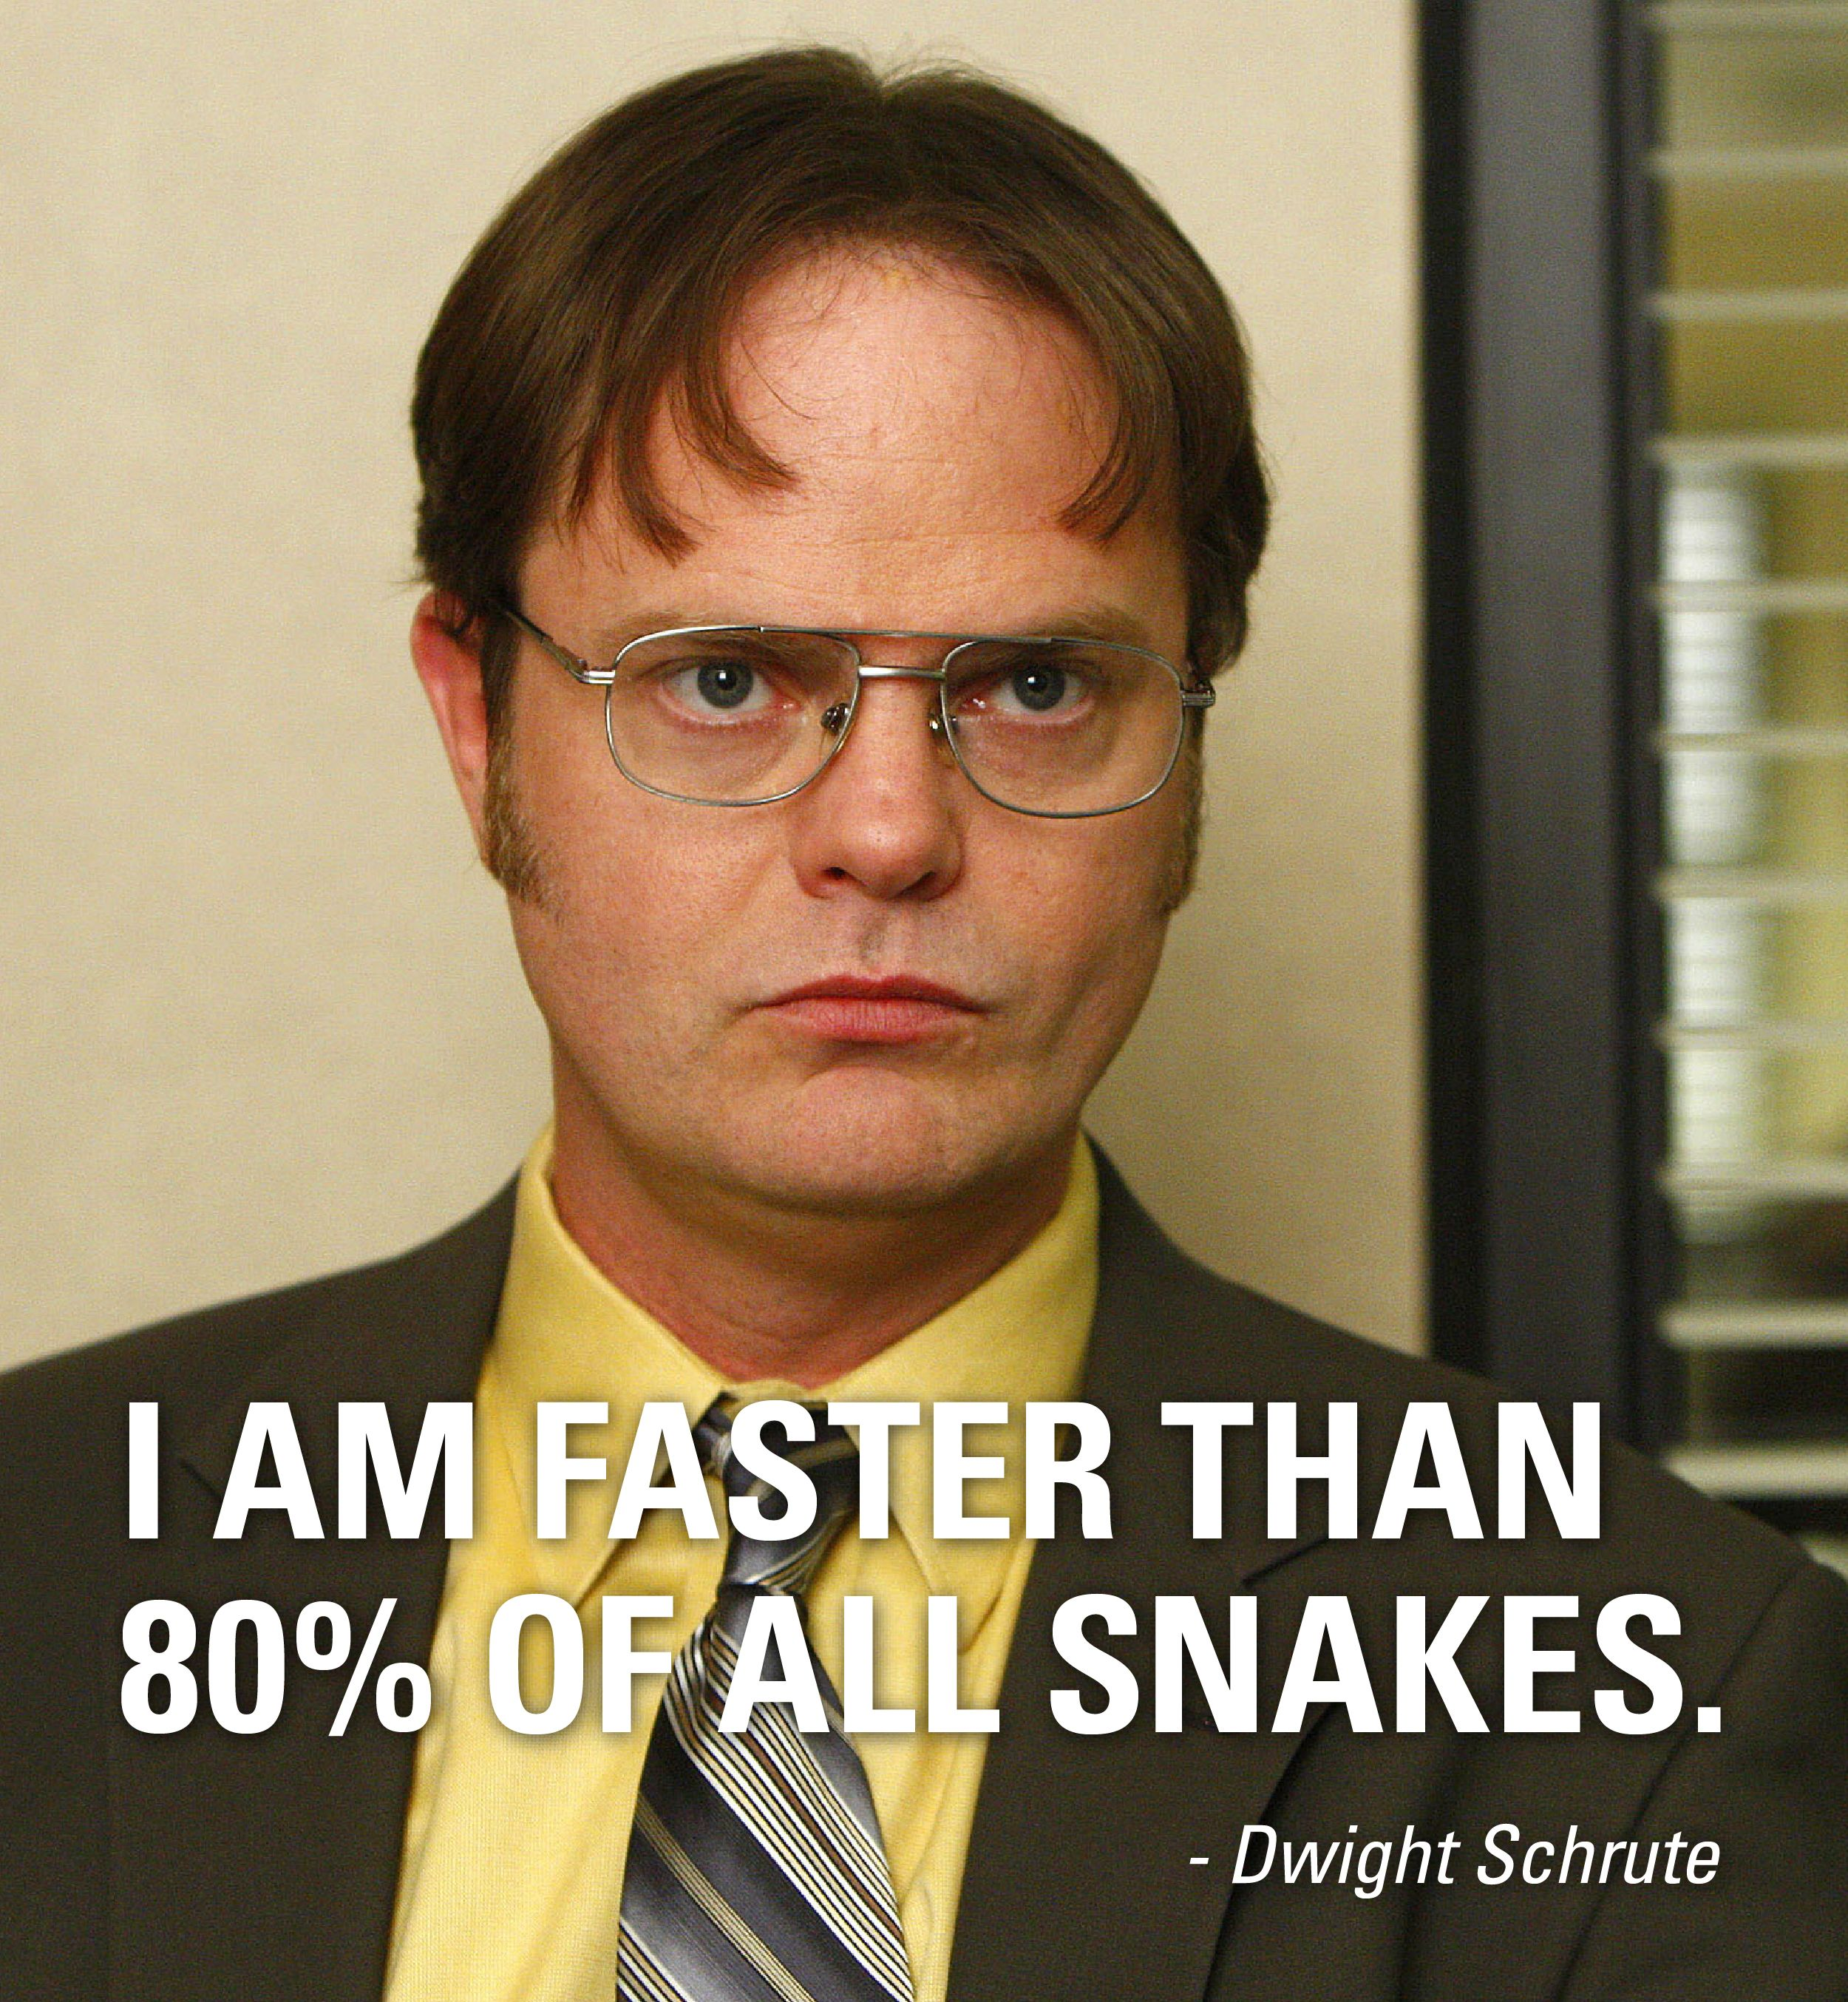 I am faster than 80 of all snakes. Dwight Schrute,